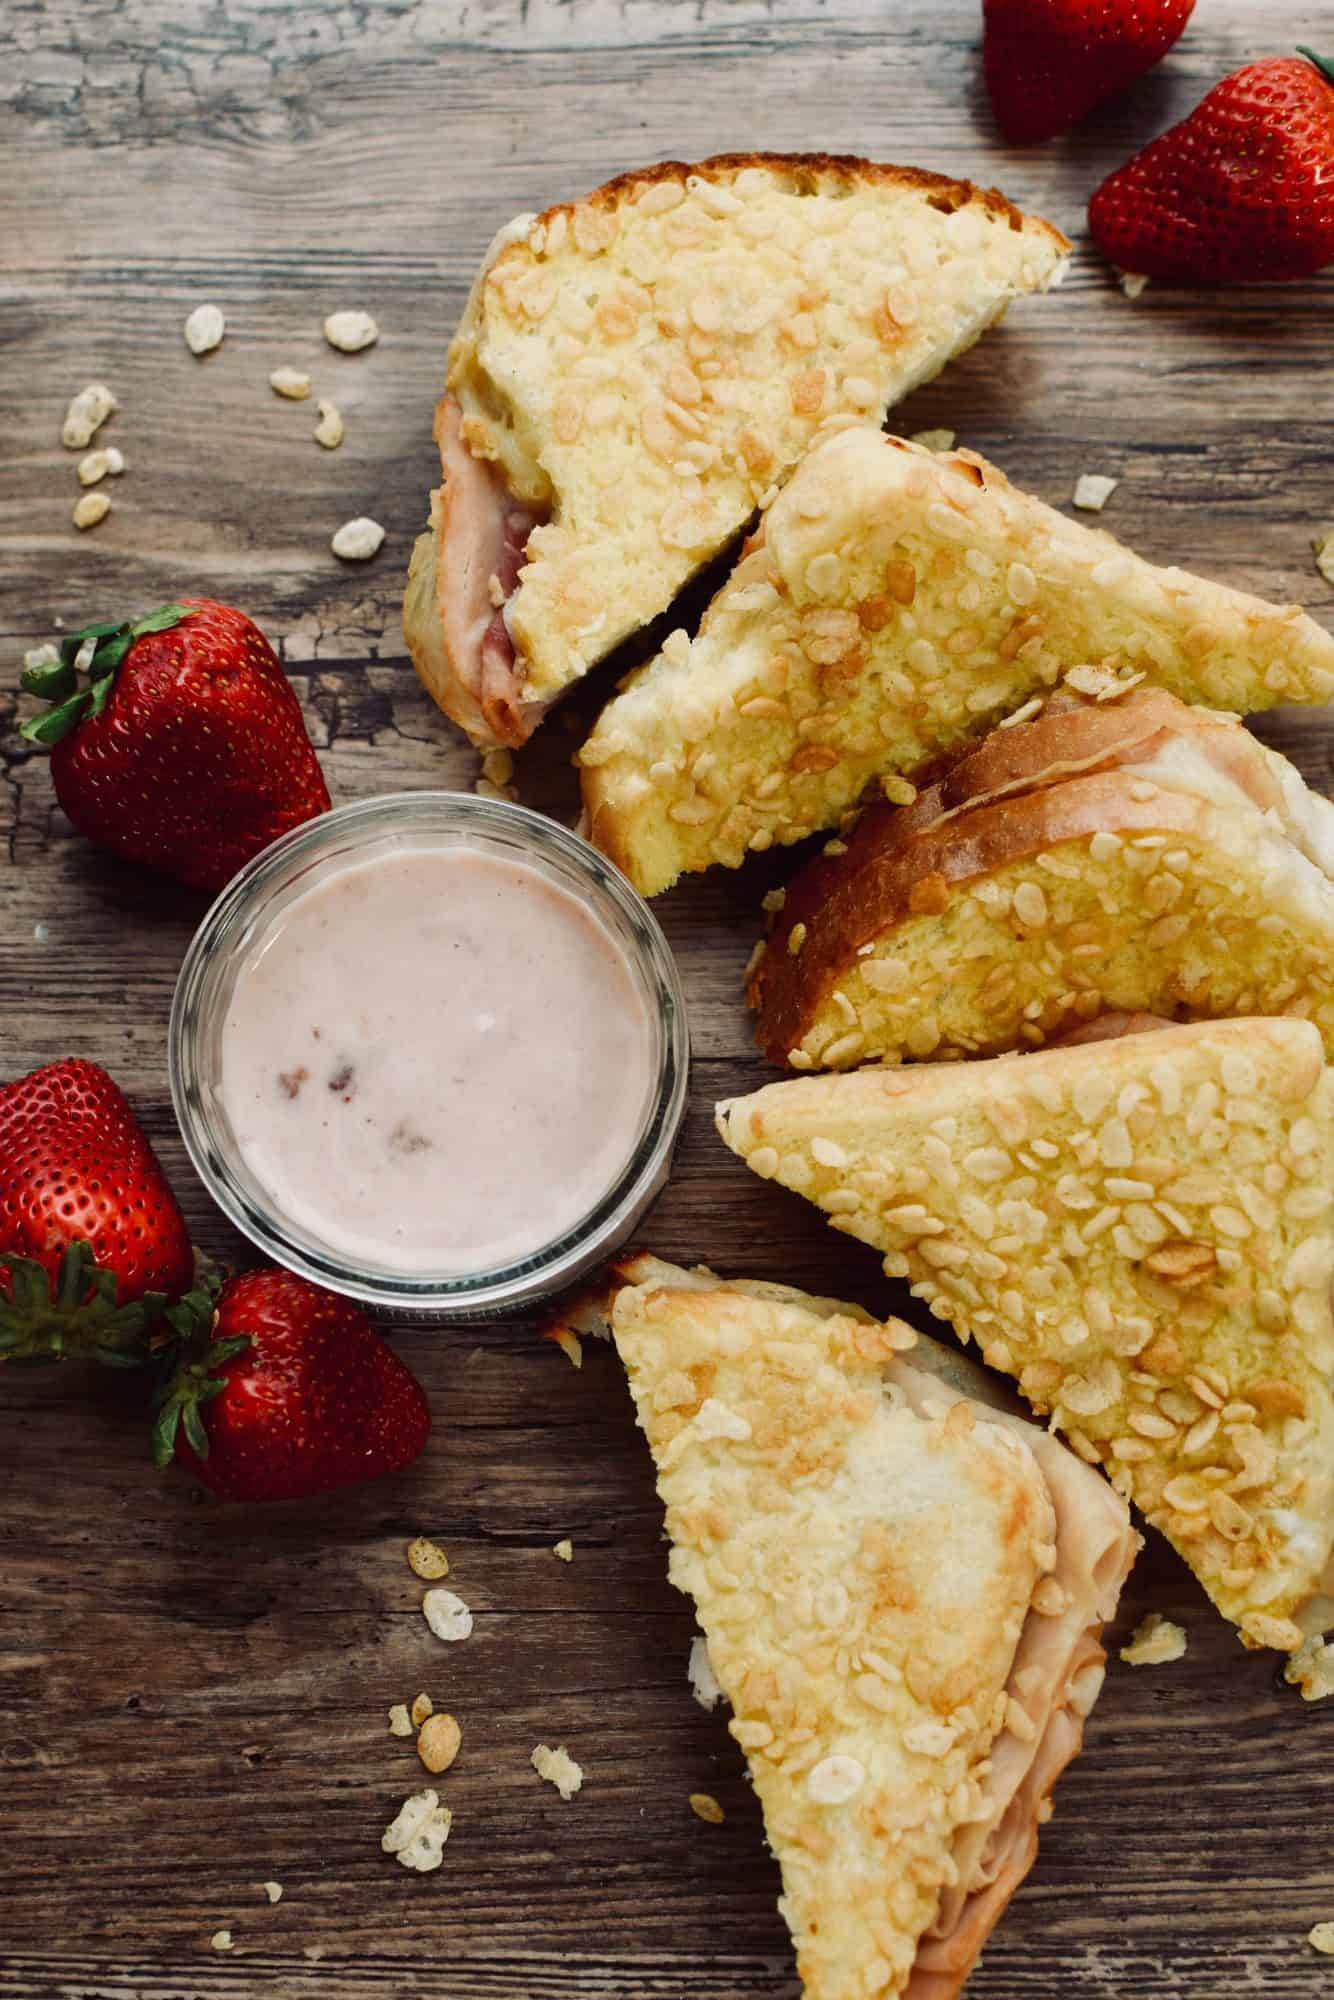 5 triangles of Monte cristo sandwiches are arranged on a table next to a small bowl of strawberry dipping sauce. Strawberries are next to the sandwiches.